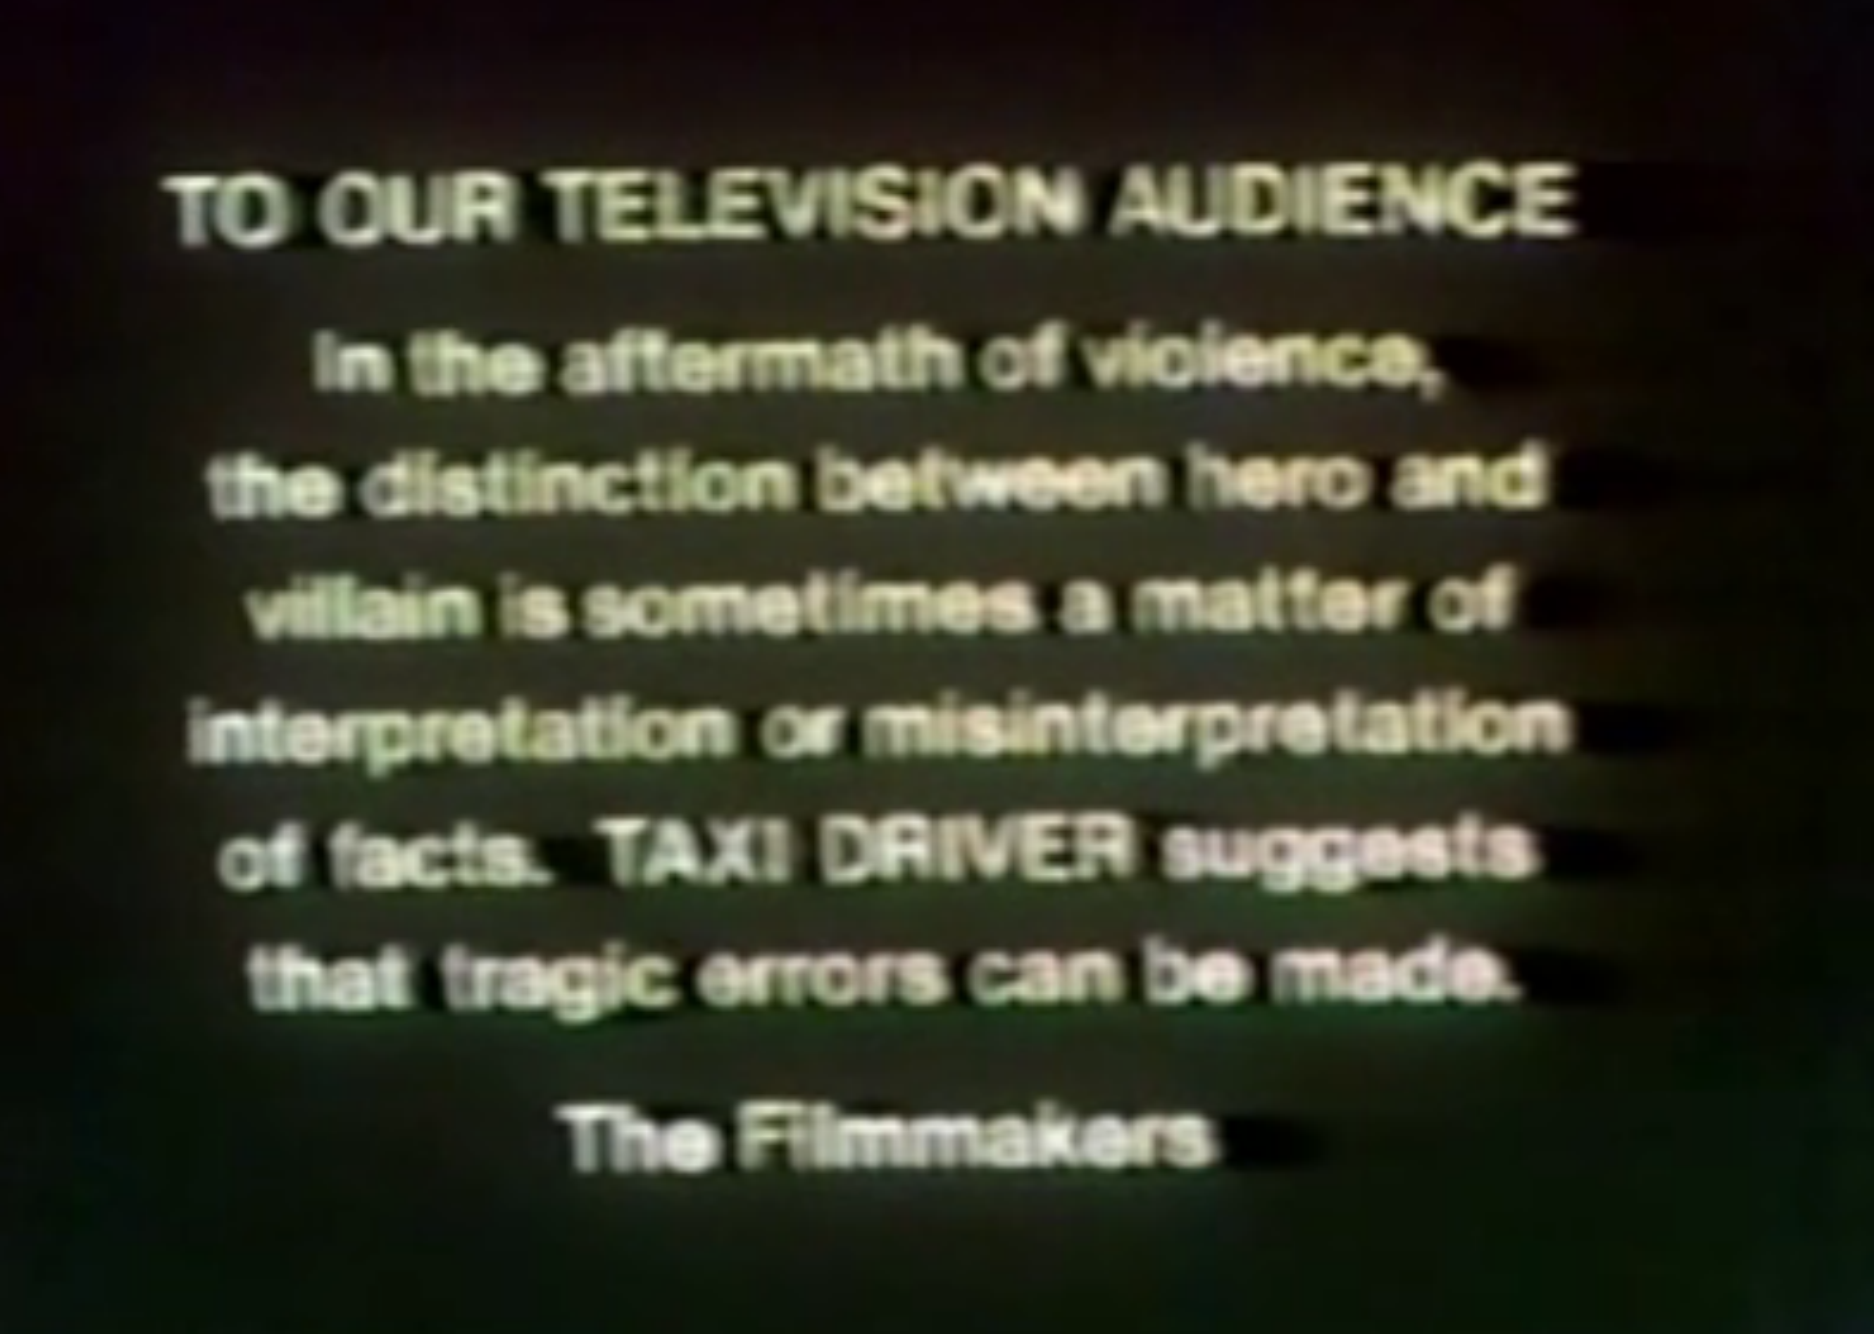 This message accompanied the television release of TAXI DRIVER